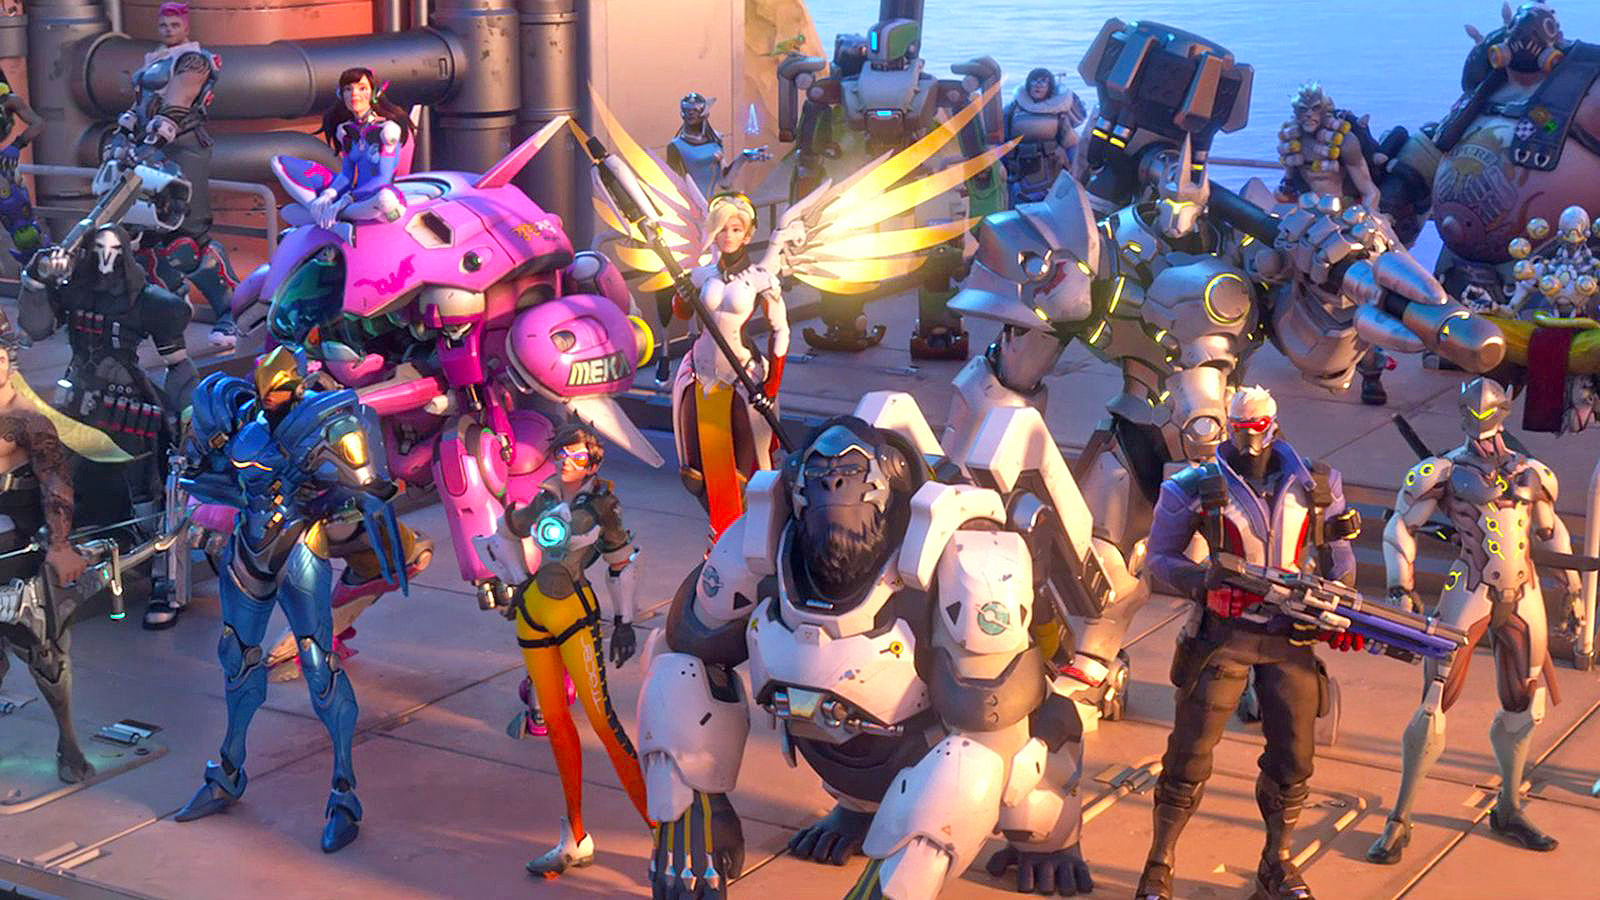 Overwatch will get new modes in 2016 and they will surely do new paid and free maps and heroes.